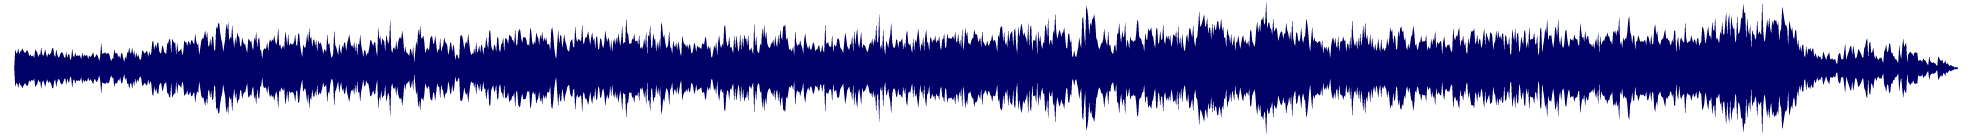 waveform of track #66724